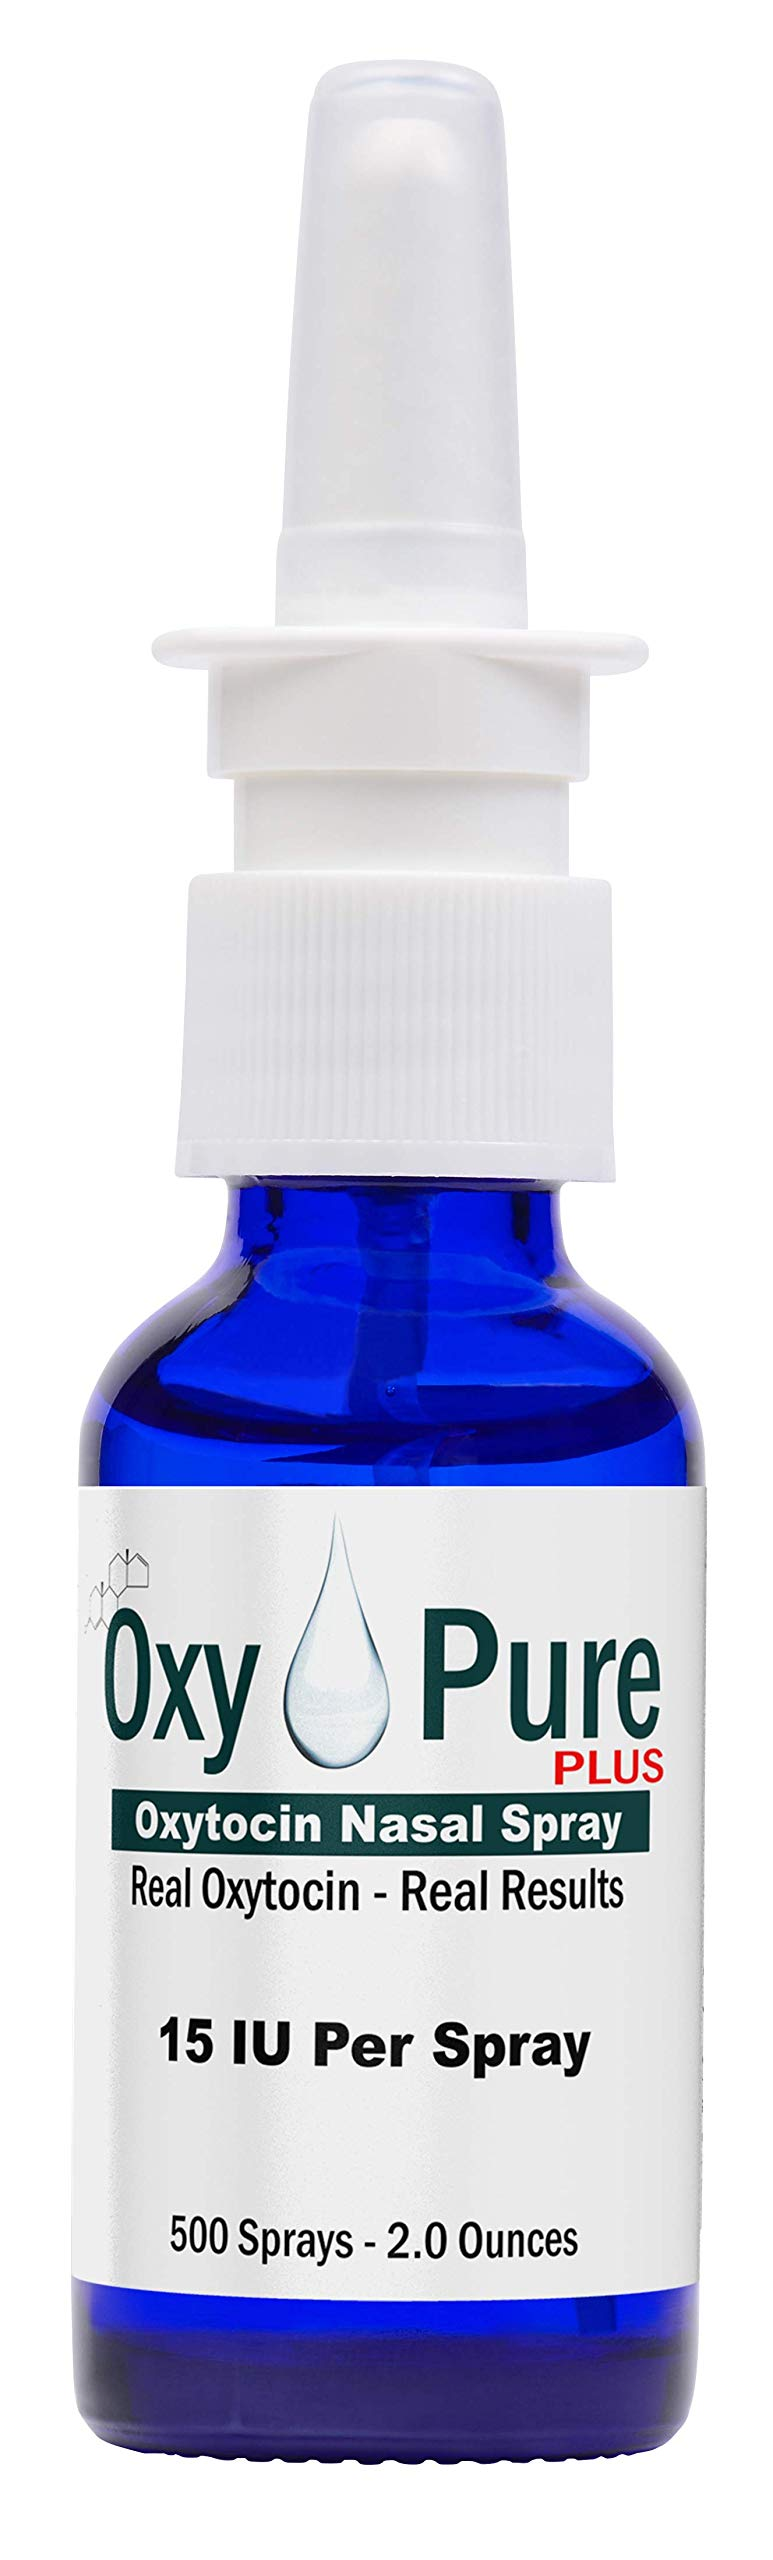 Oxytocin Nasal Spray Oxy Pure Real Oxytocin Real Results 60ml - 2.0 Ounce Professional Size by PherLuv